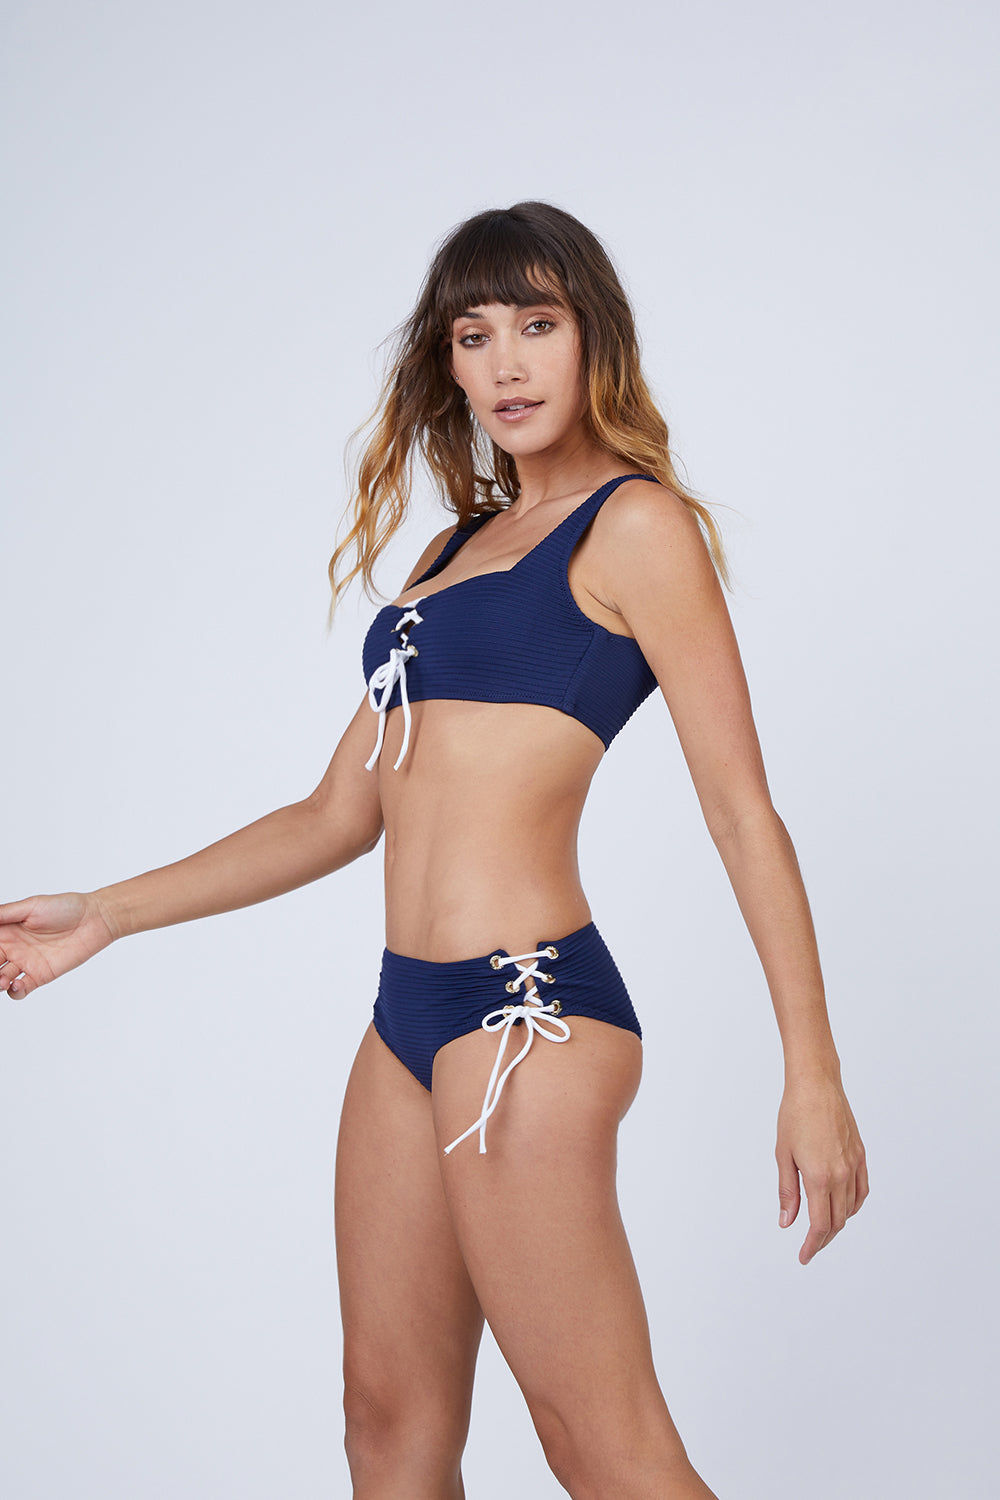 HEIDI KLEIN Square Ribbed Lace Up Front Bikini Top - Navy Blue Bikini Top | Navy Blue| Heidi Klein Square Ribbed Lace Up Front Bikini Top - Navy Blue Features:  Fully lined in soft lining for ultimate comfort. Fine elastic and binding along under bust and back strap are delicate and lightly supportive. Soft side seam boning to enhance bust support. Wide neck strap and elasticated under bust is for additional comfort and support. Front View